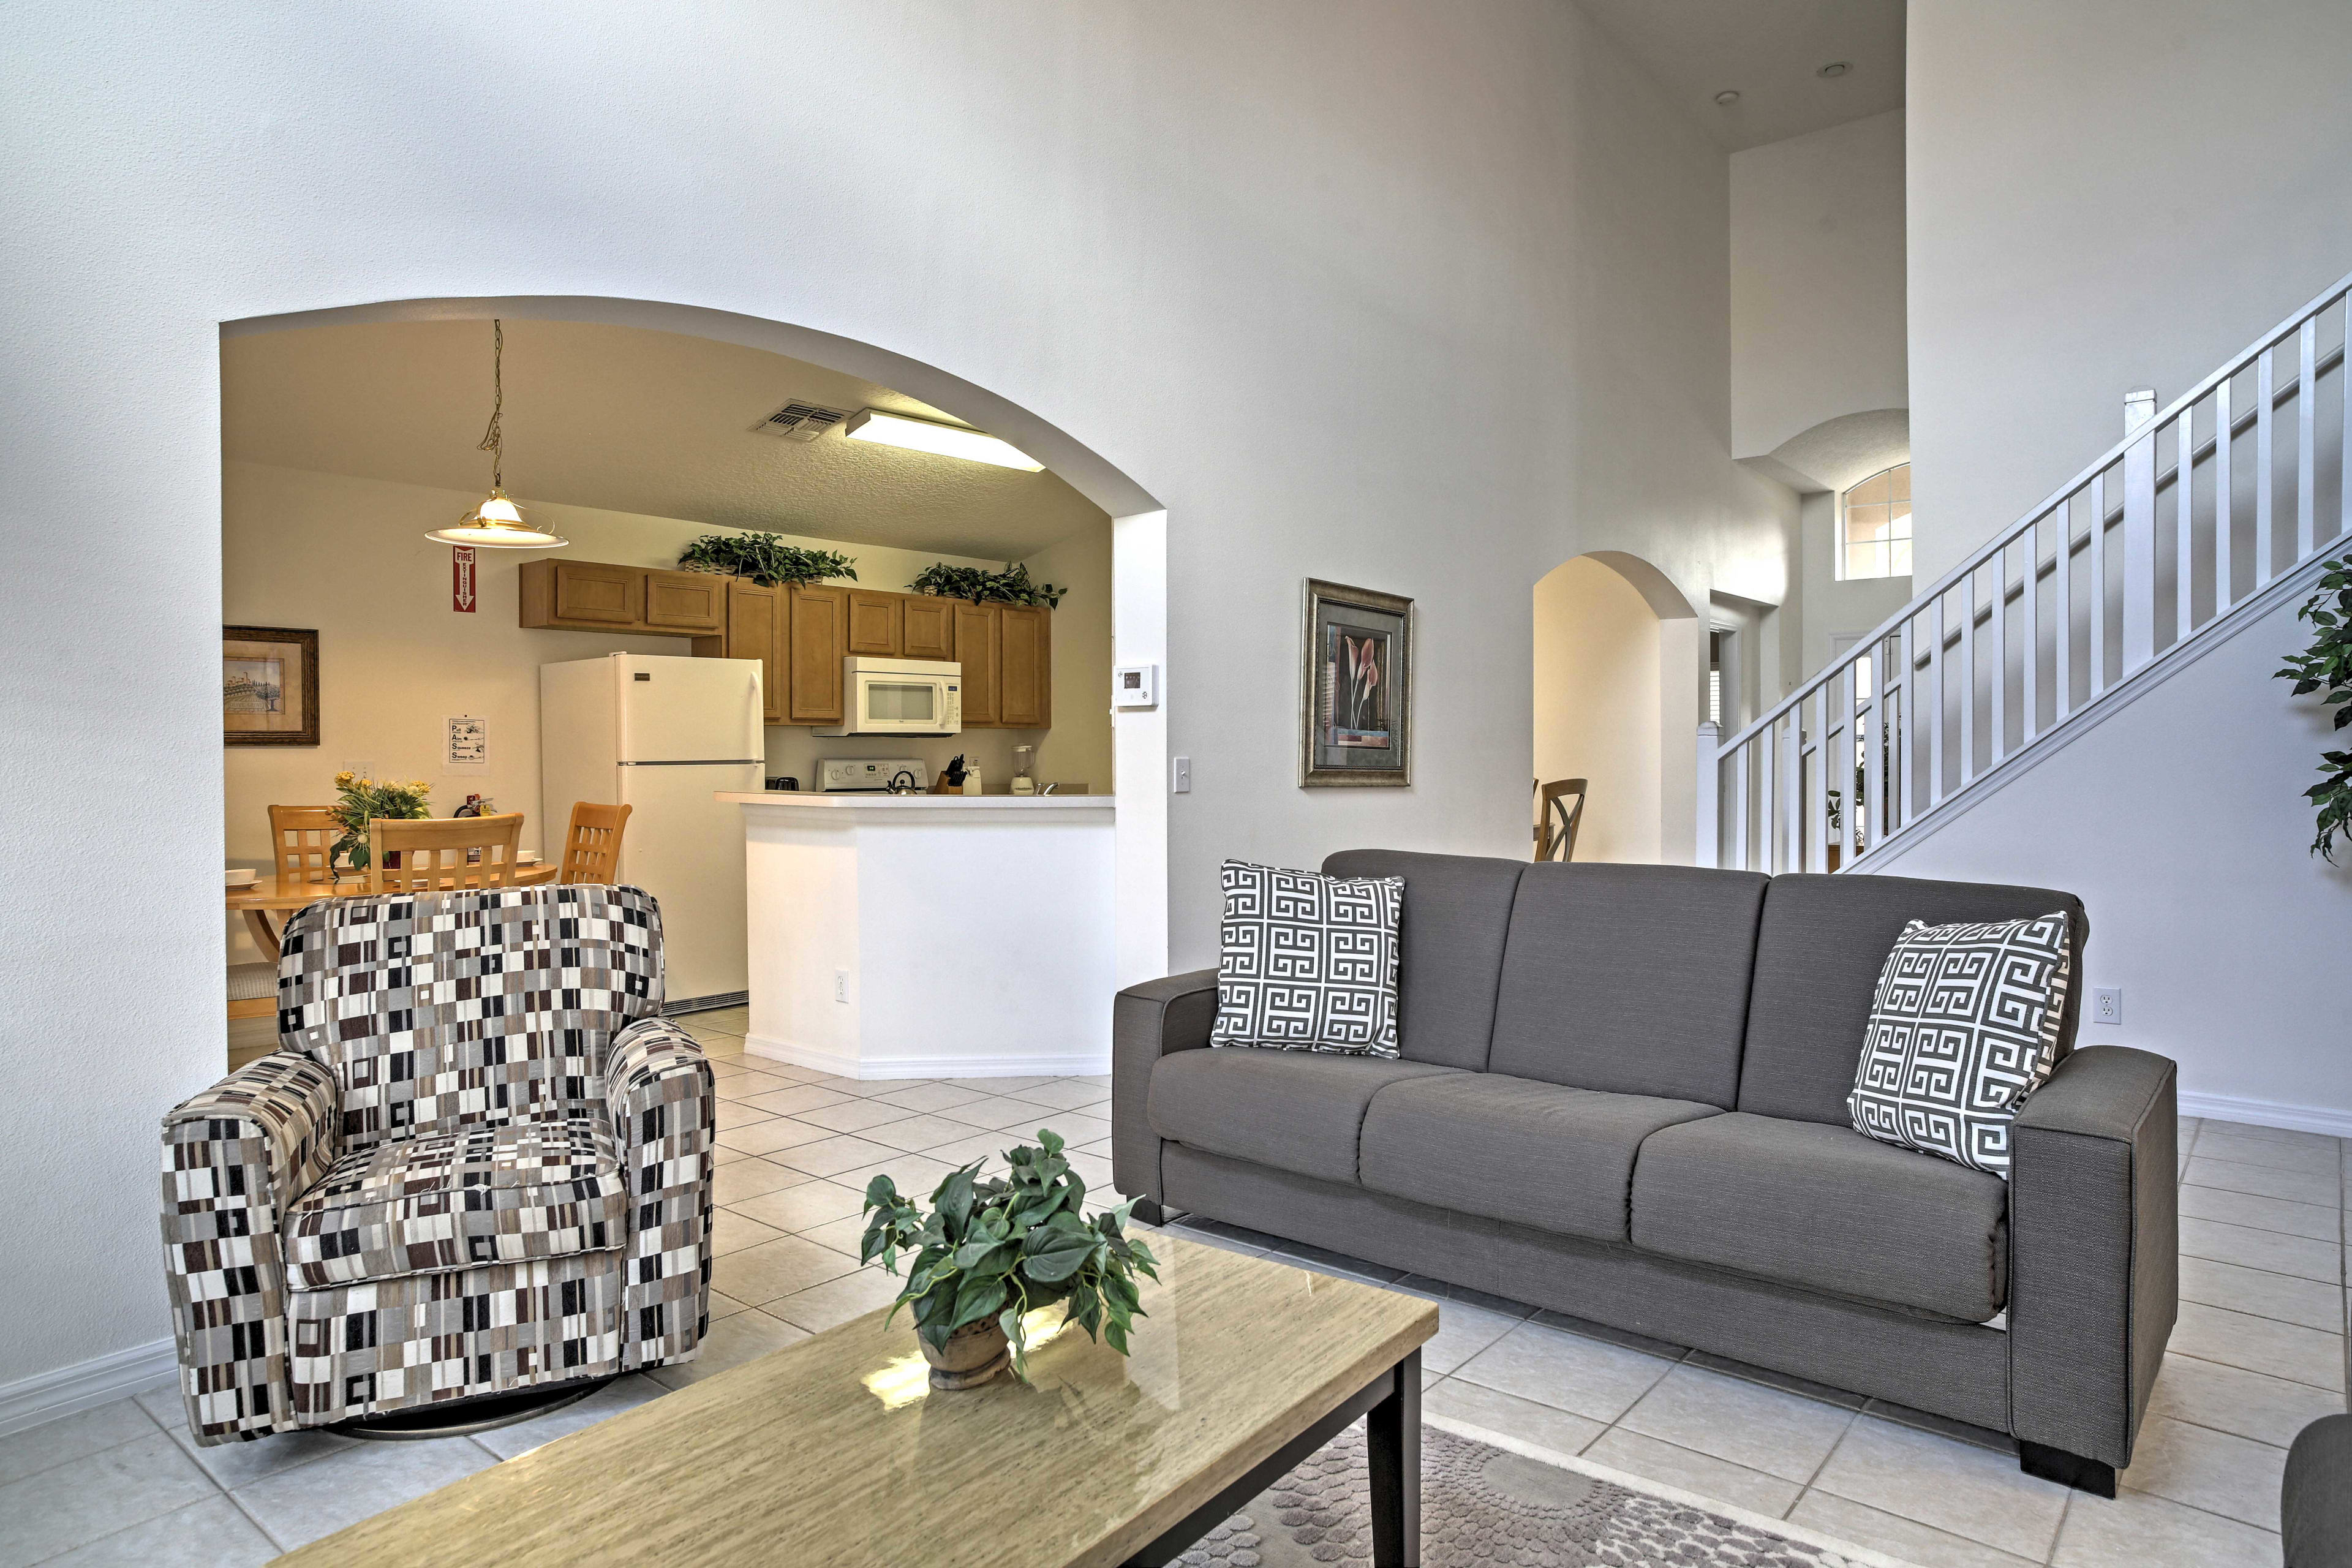 The living room flows seamlessly into the kitchen.